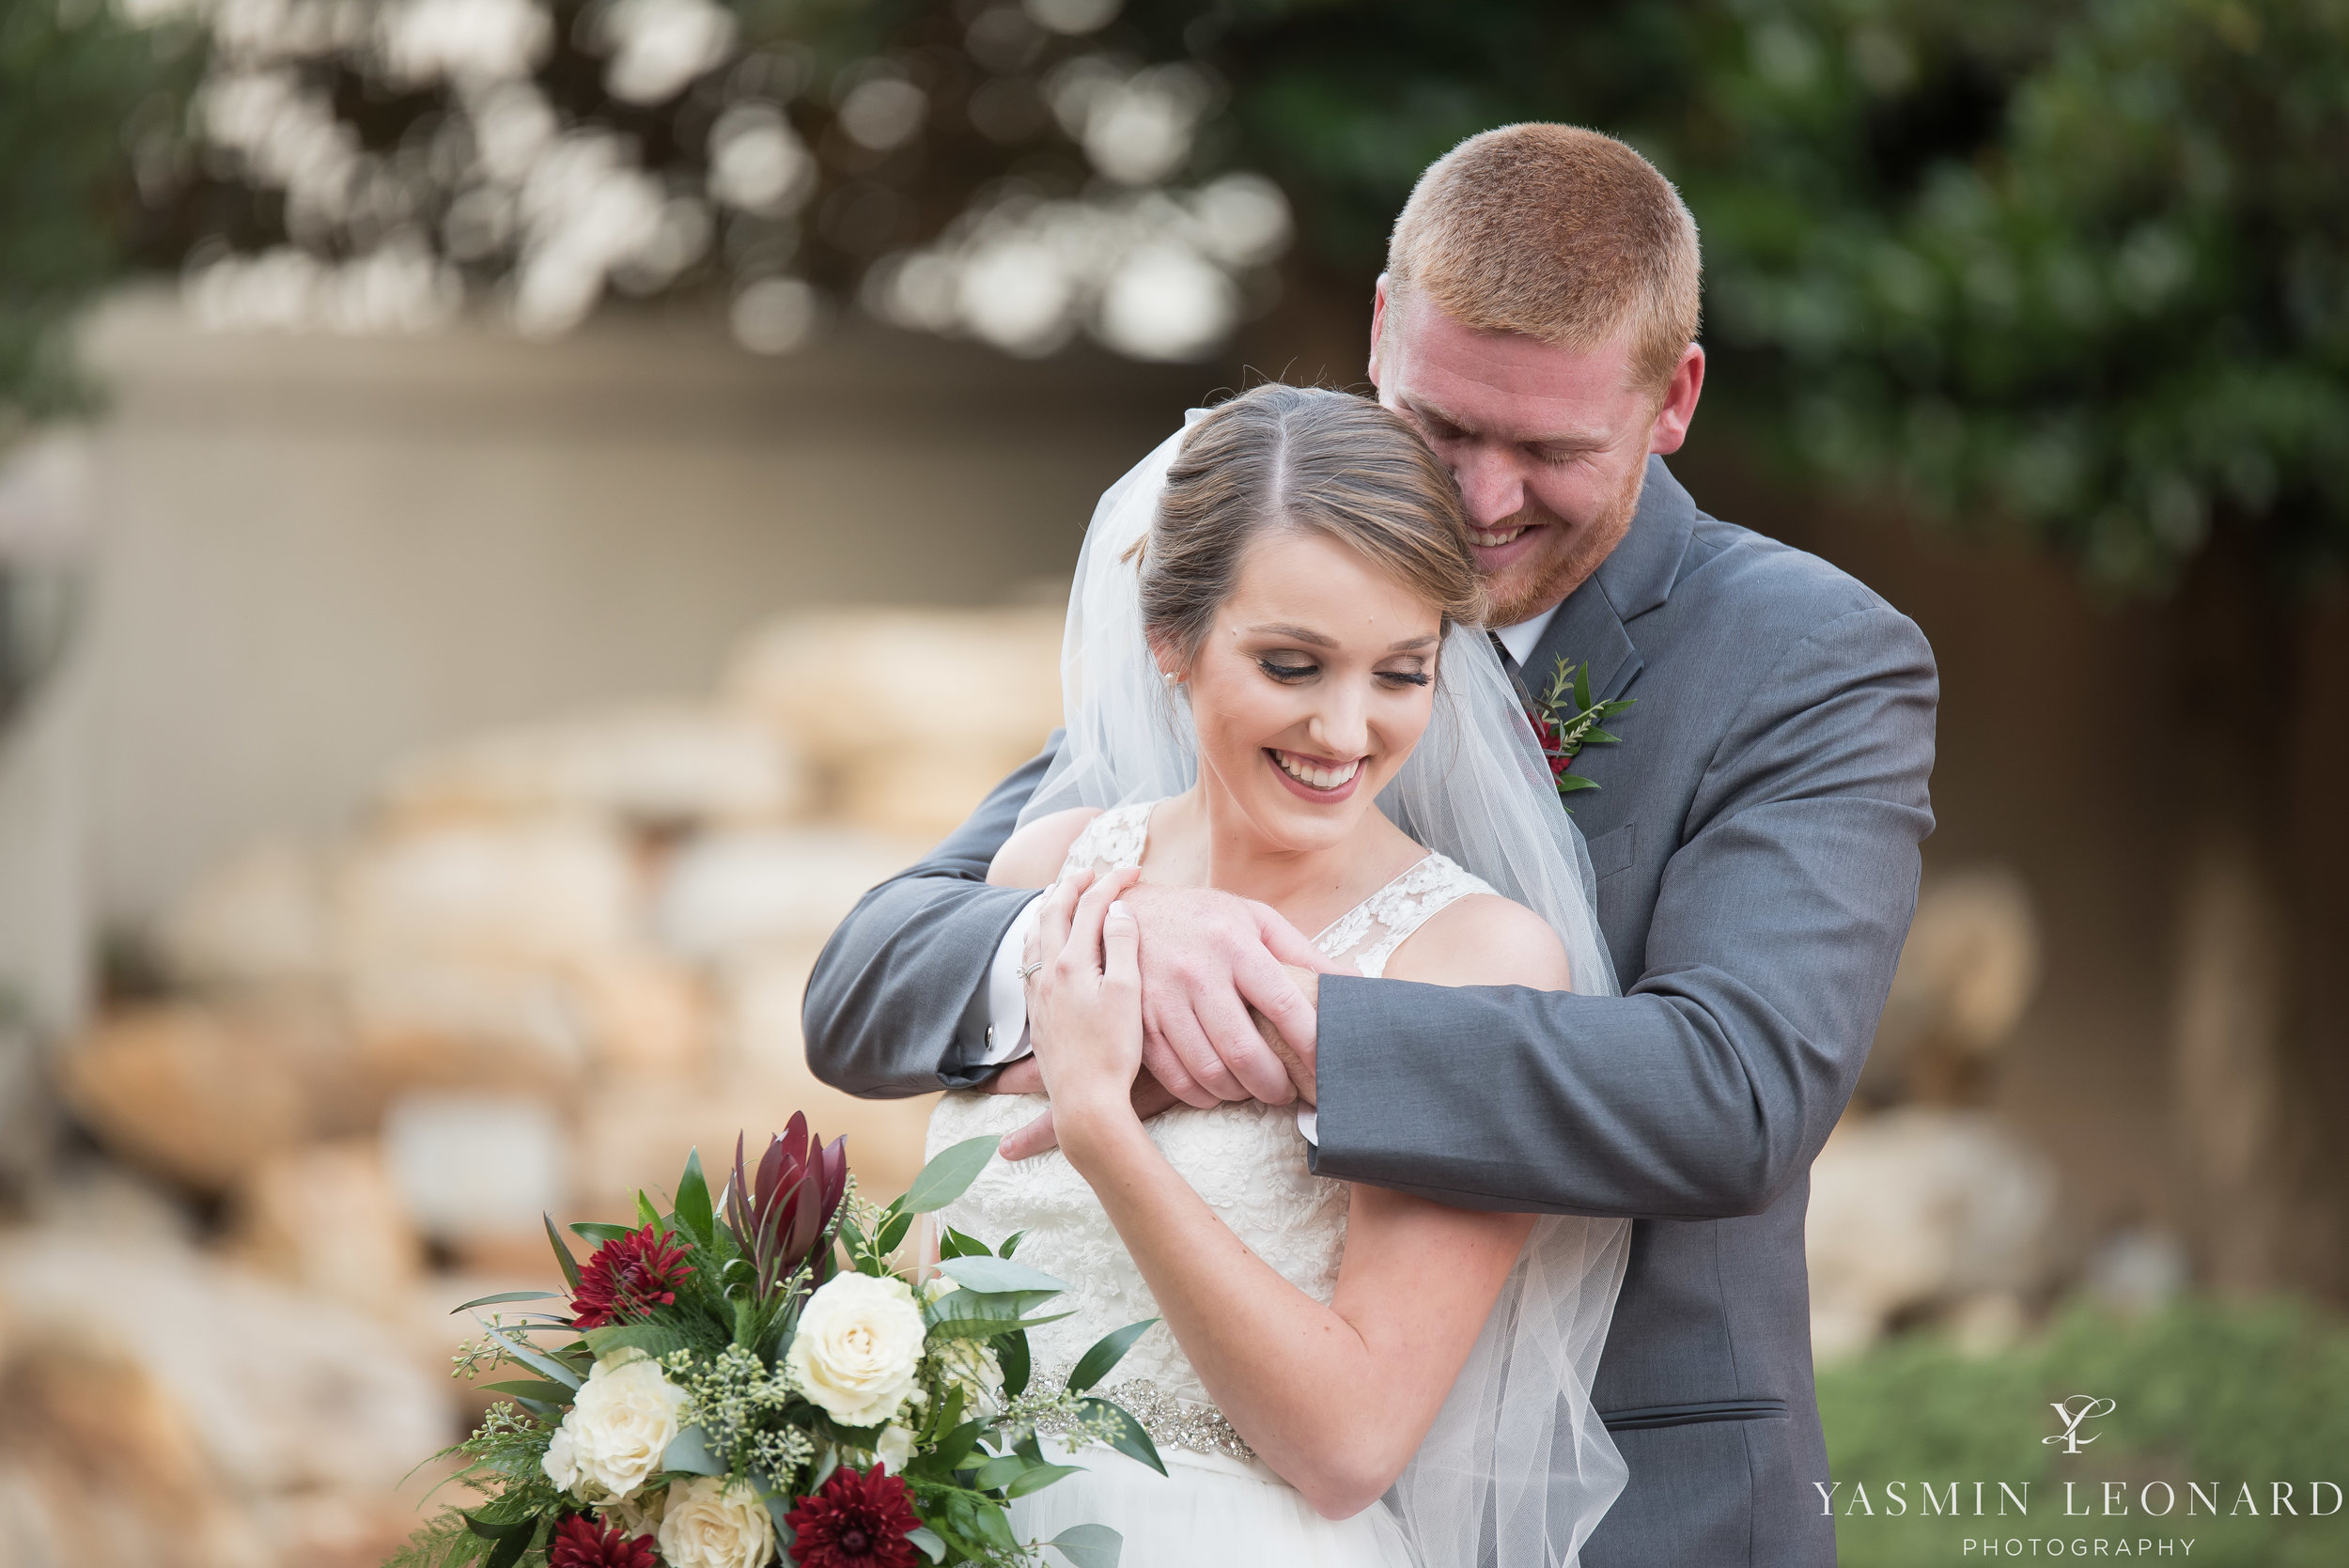 Villa Del Amour - High Point Weddings - NC Weddings - NC Photographer - NC Wedding Photographer - Yasmin Leonard Photography-44.jpg